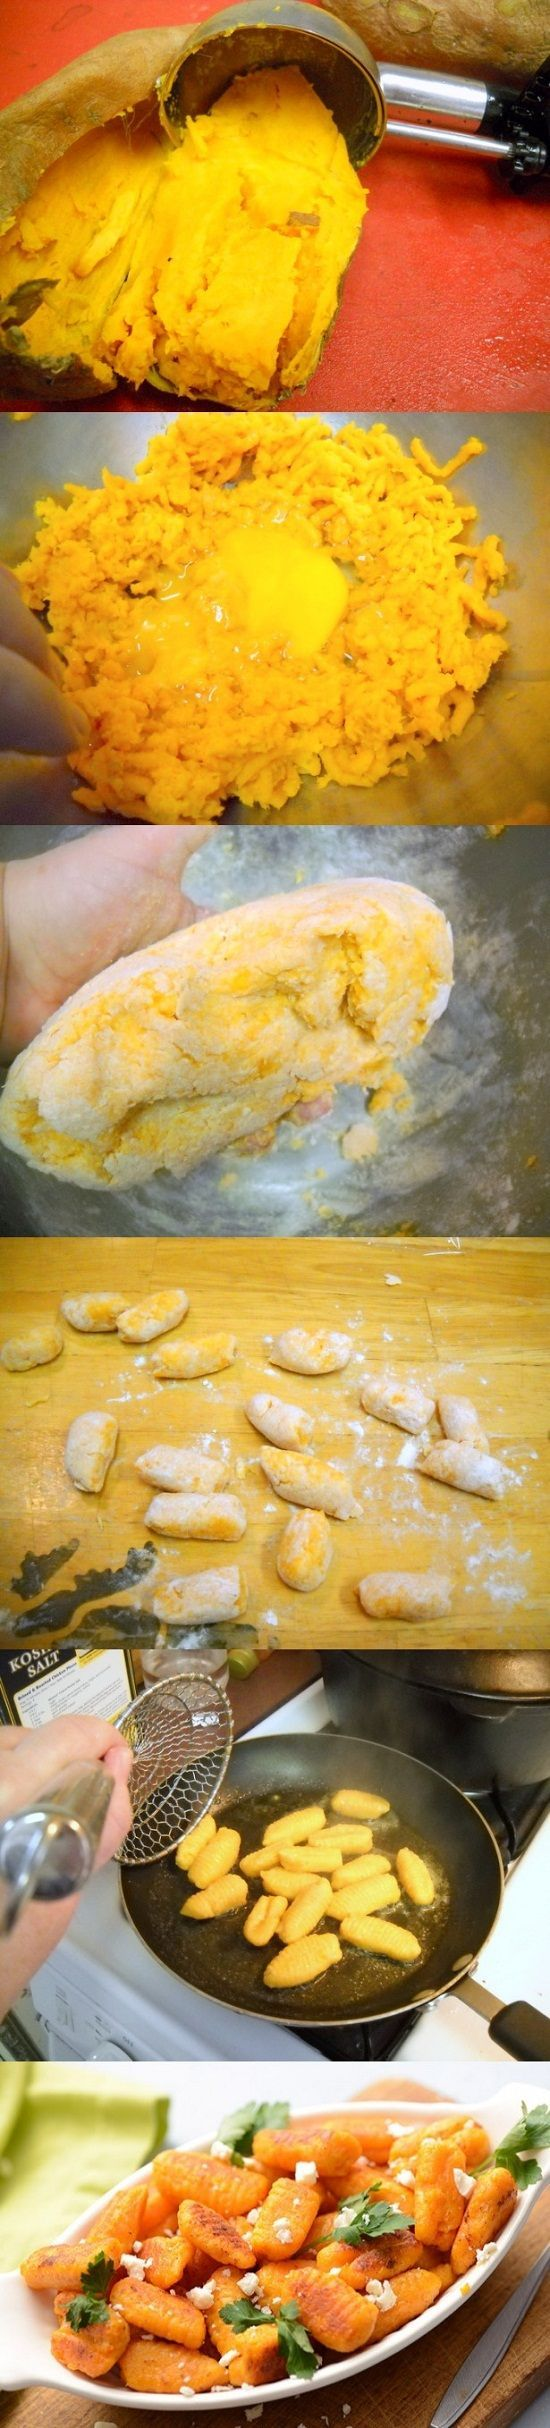 Sweet Potato Gnocchi Recipe Ingredients: 2 medium sweet potatoes, baked 1 large egg 1/2 cup freshly grated Parmesan cheese 3/4 cup King Arthur Unbleached All-Purpose Flour additional flour for roll…